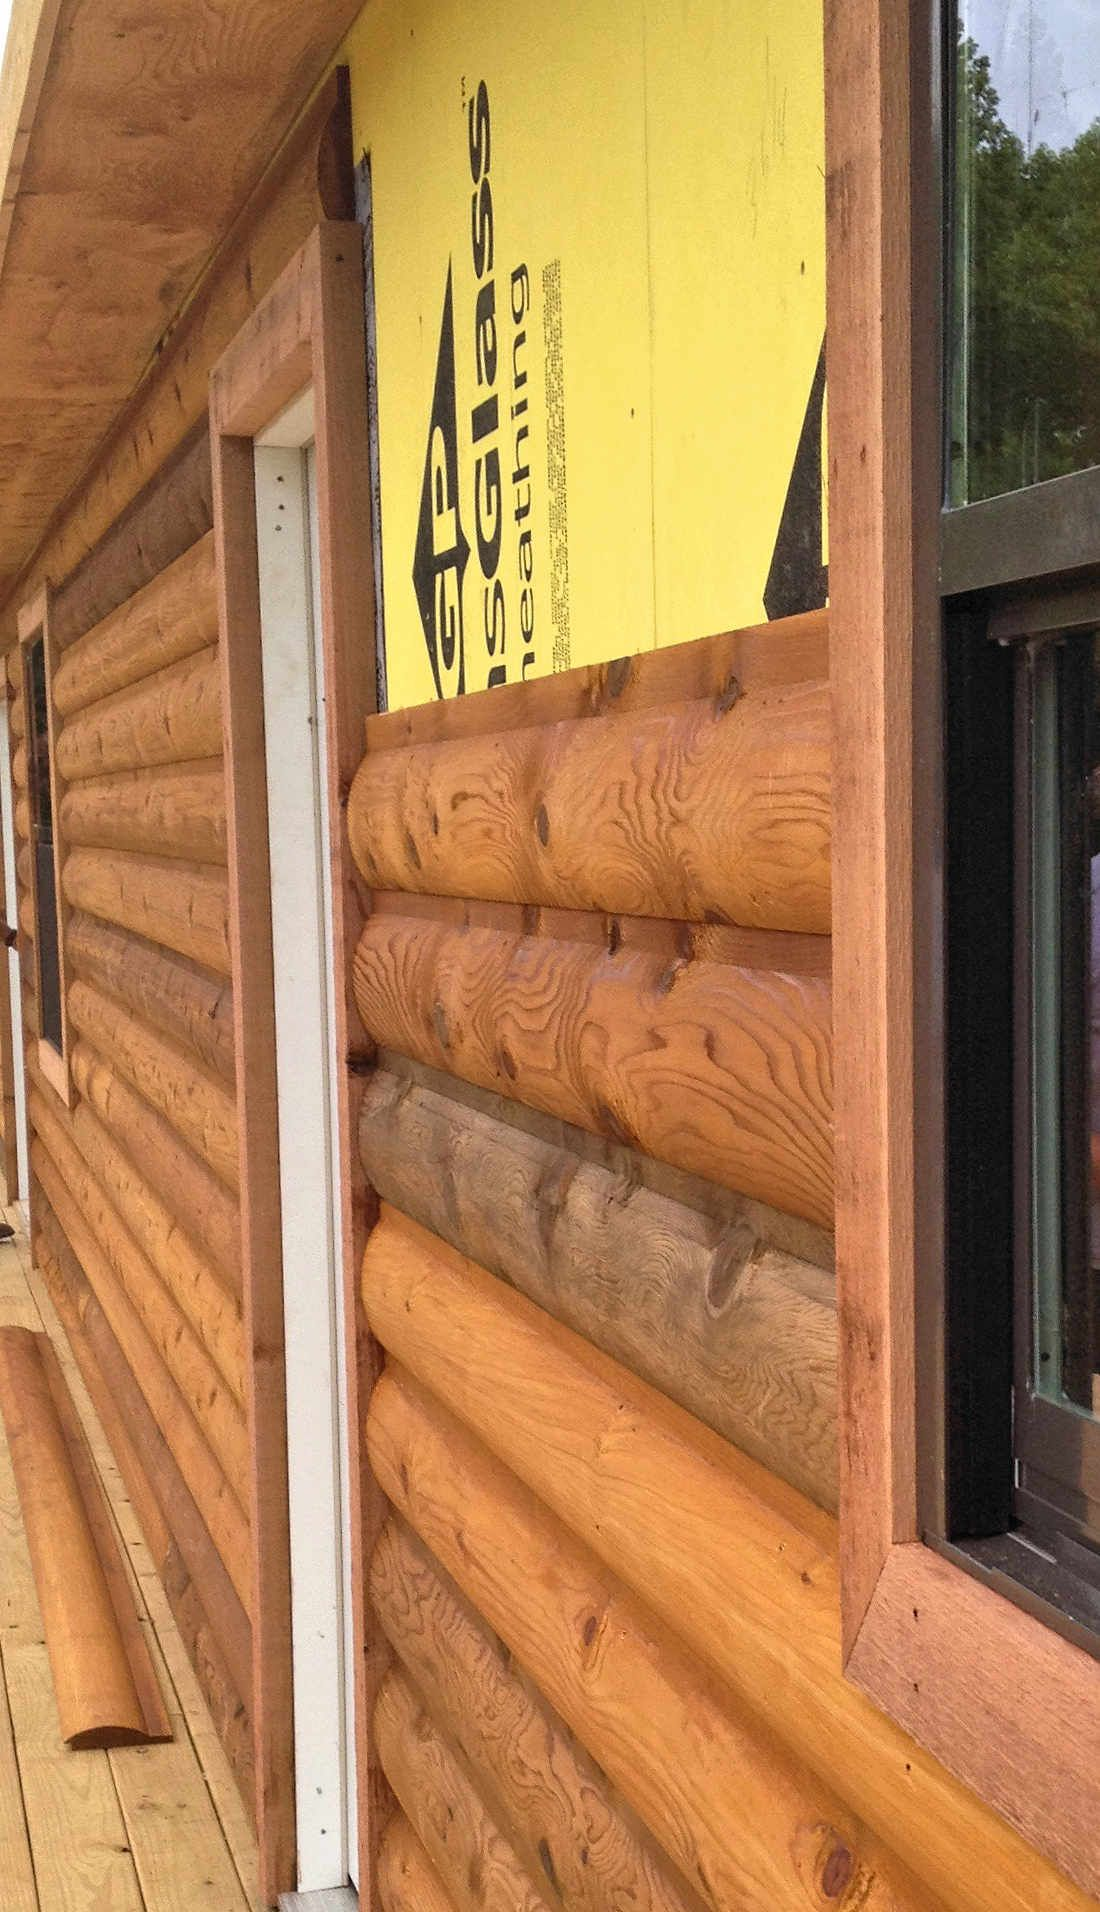 Pin By Tim Bobosky On Tiny House General Idea Log Cabin Rustic Log Cabin Siding Log Cabin Interior